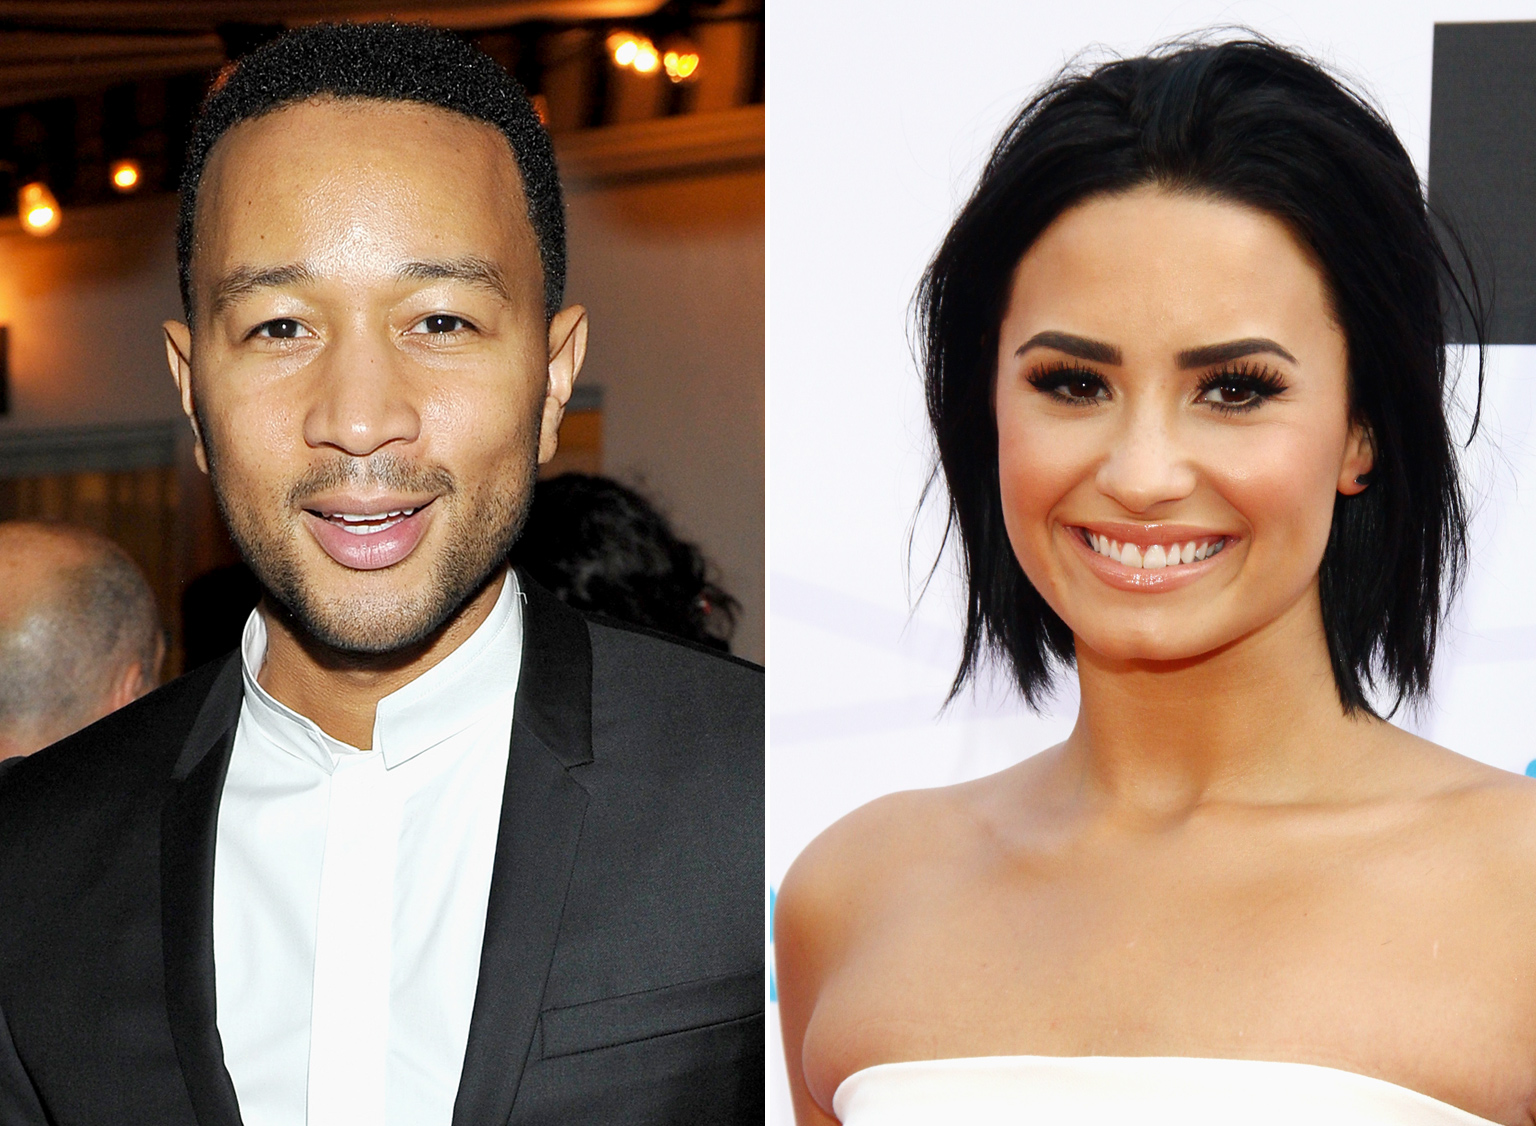 John Legend and Demi Lovato to Perform at Hillary Clinton's 68th Birthday Party